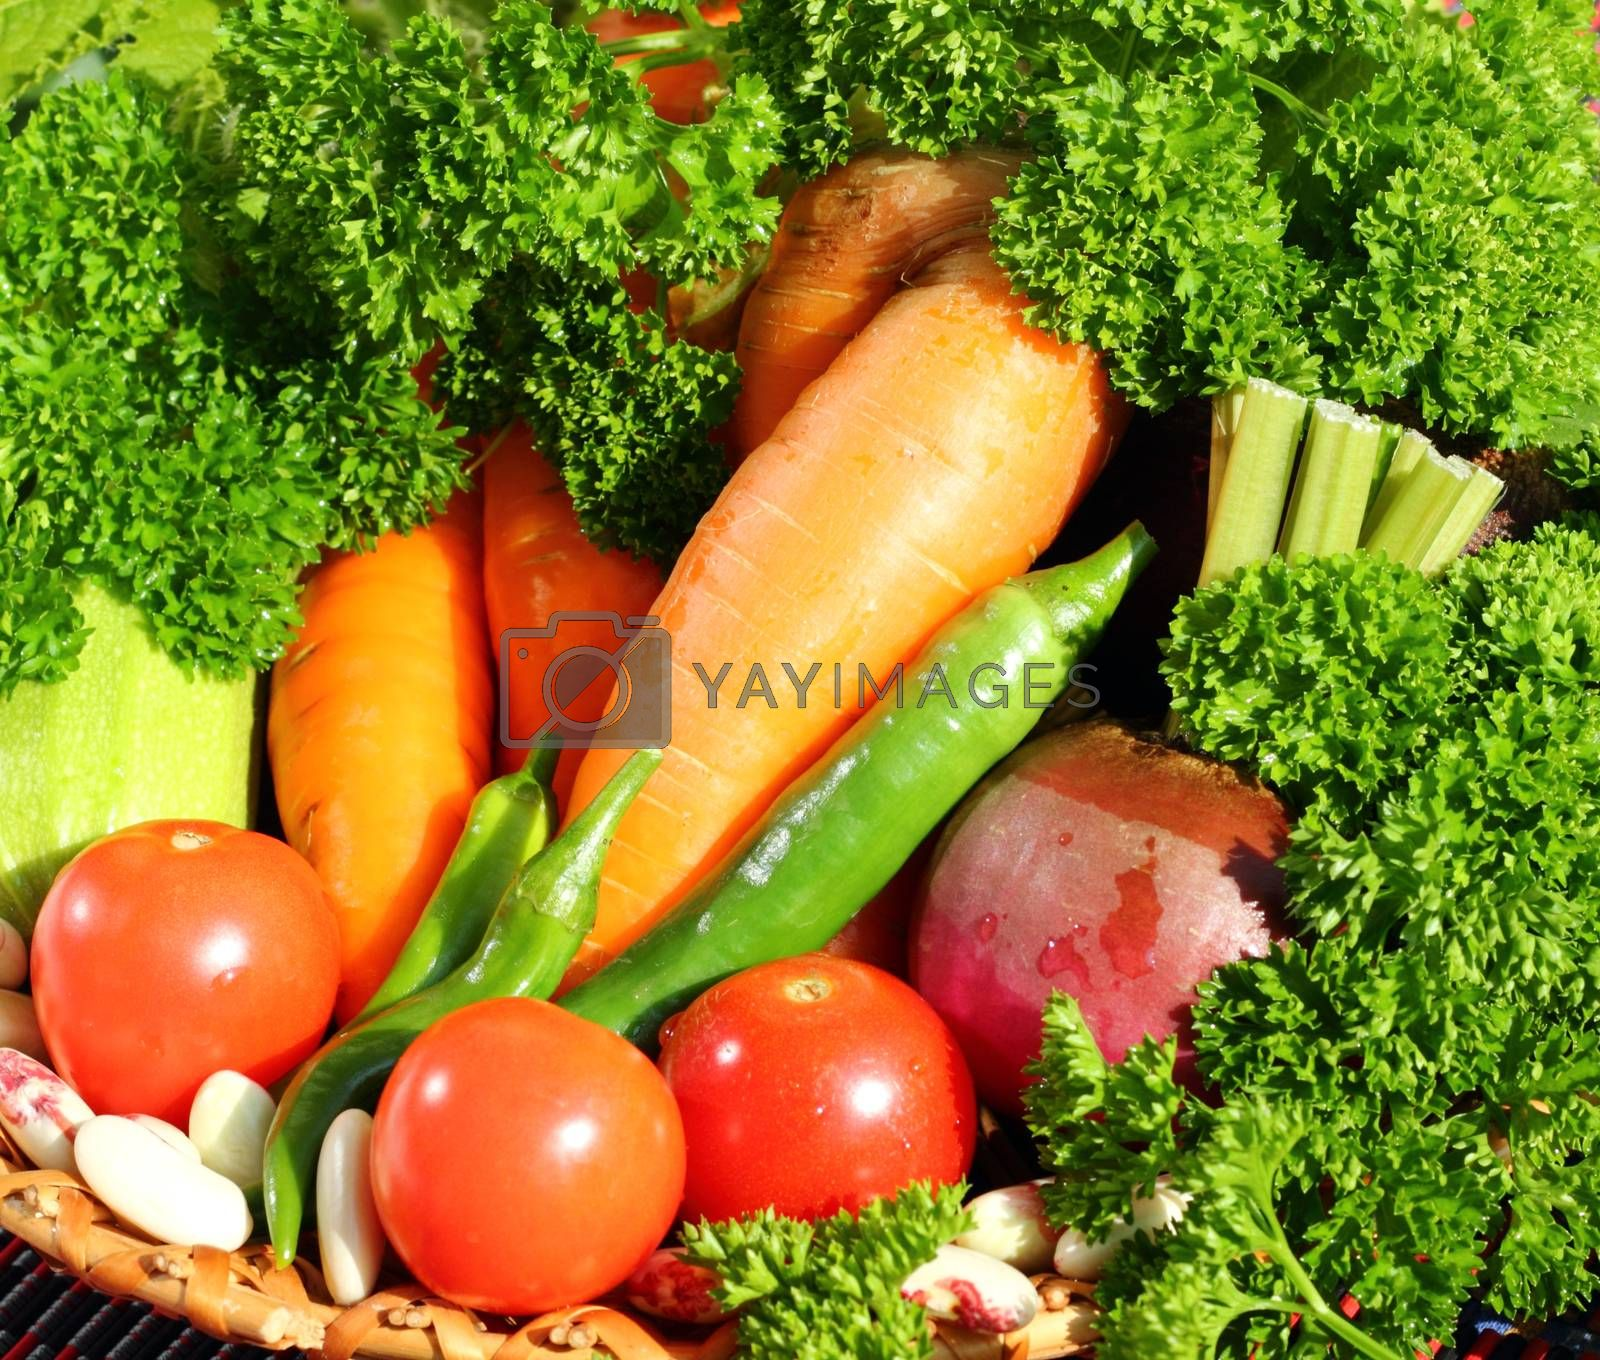 Royalty free image of Fresh vegetables  by openas